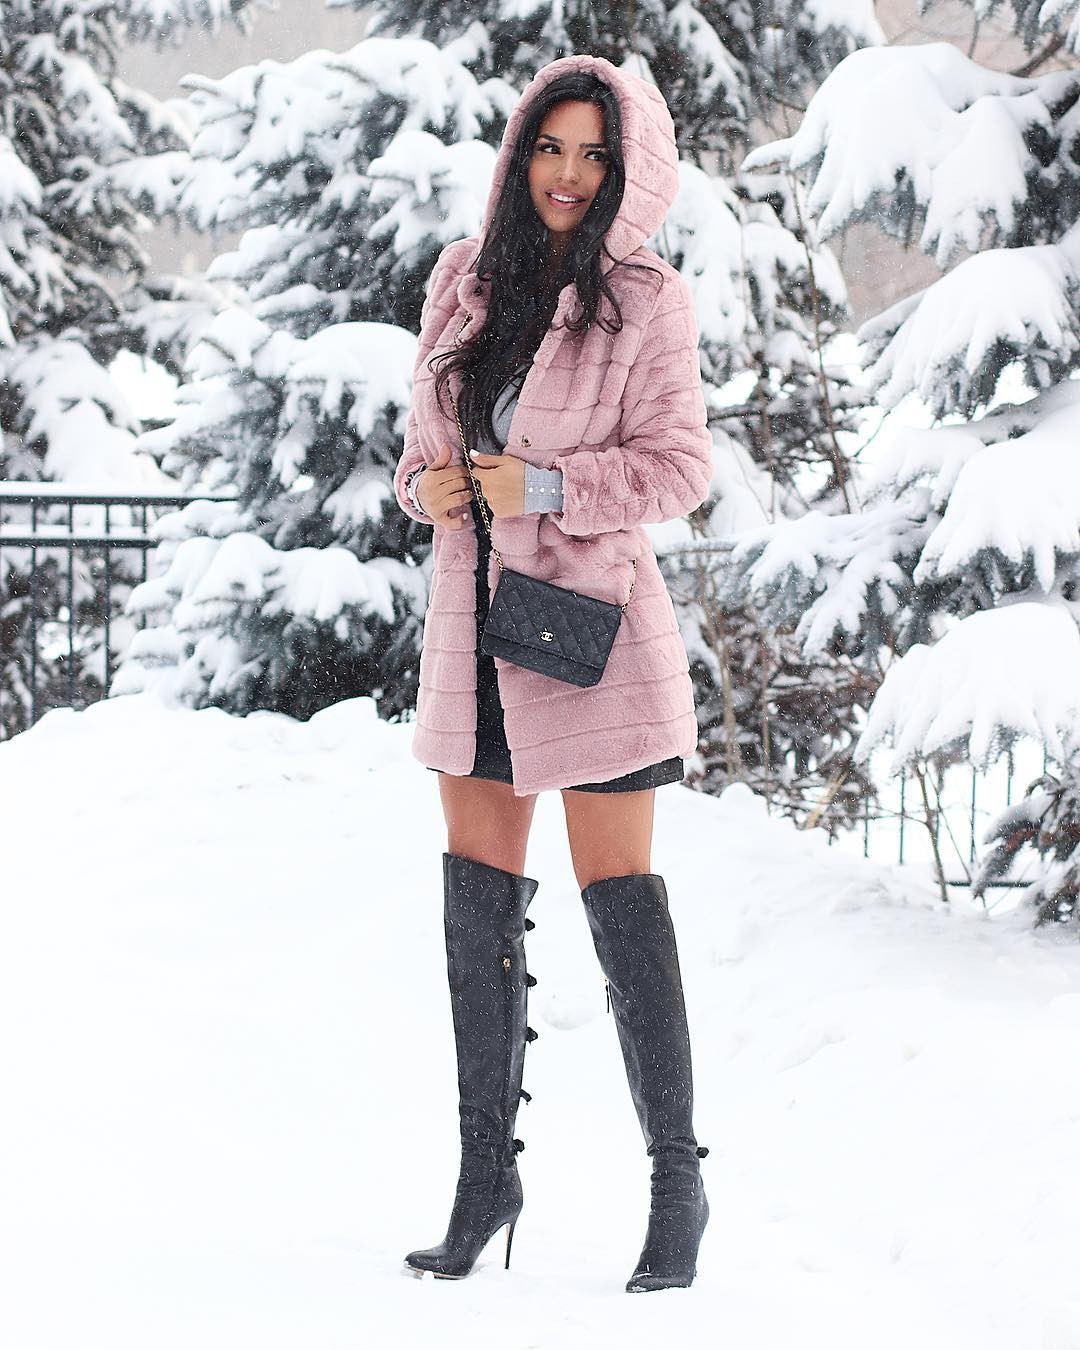 Shadi Y Cair knee-high boot, fur matching ideas for girls, hot legs